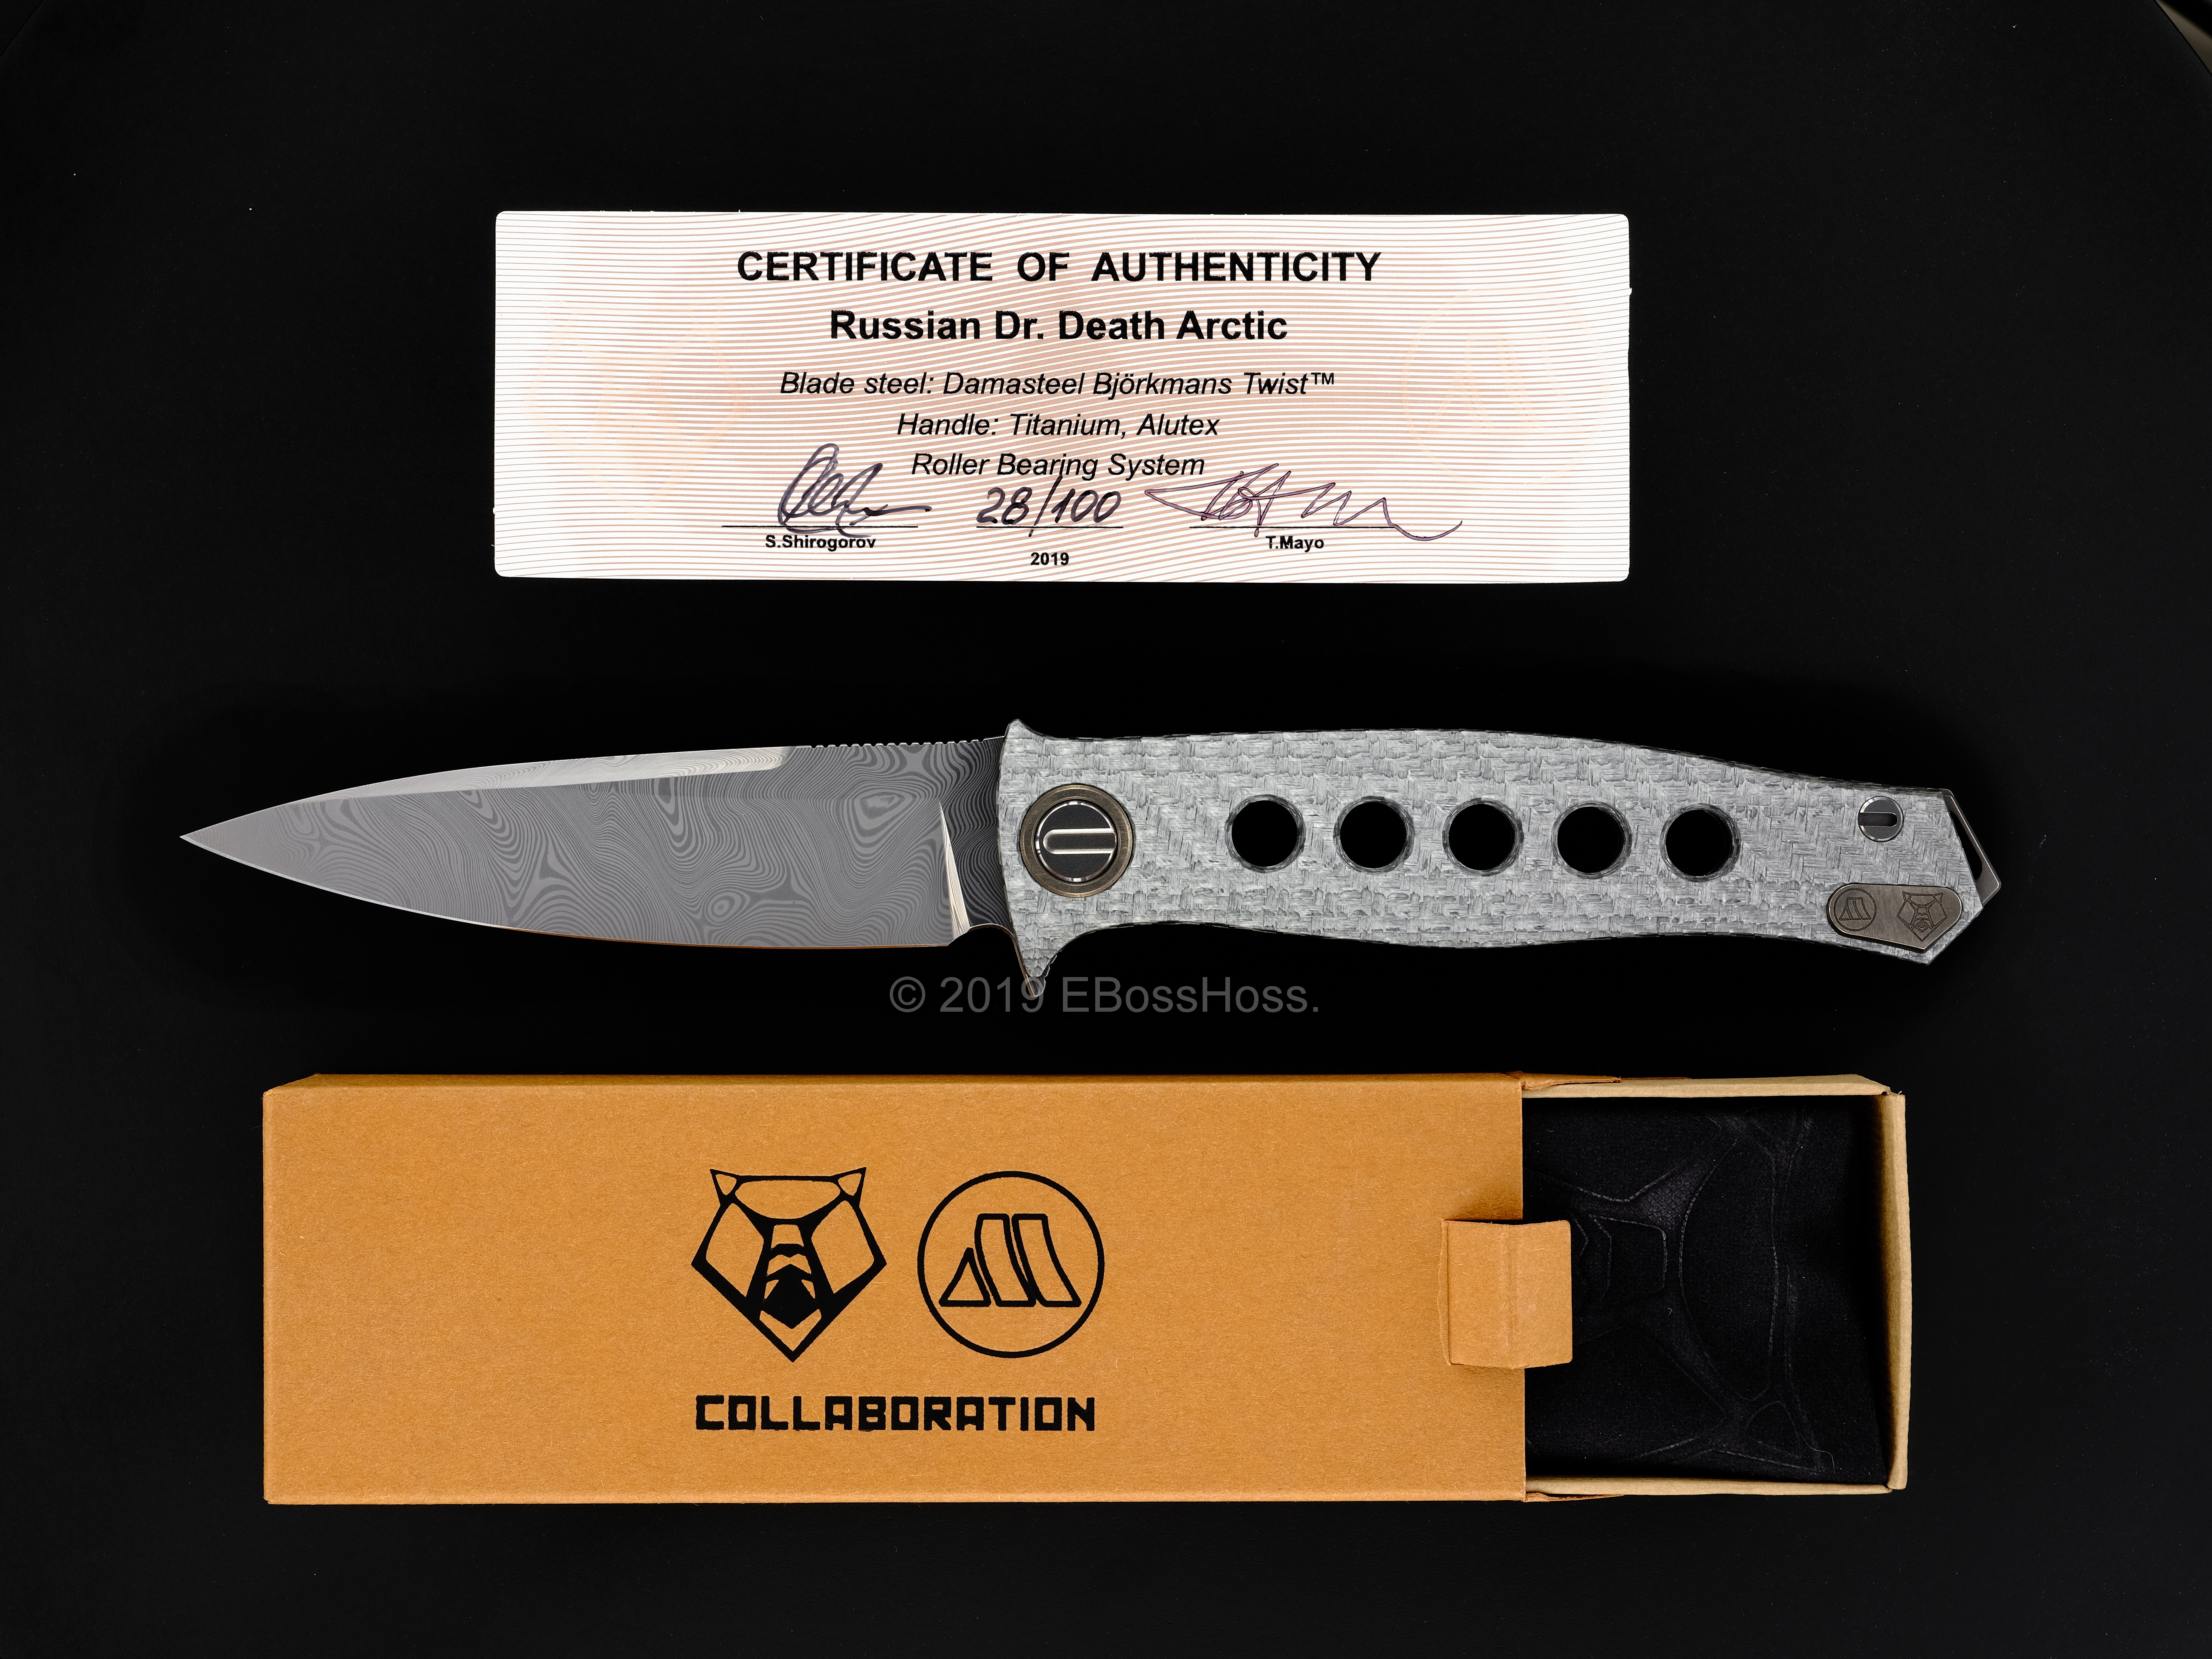 Sergey Shirogorov - Tom Mayo Collaboration Russian Dr. Death Arctic Flipper